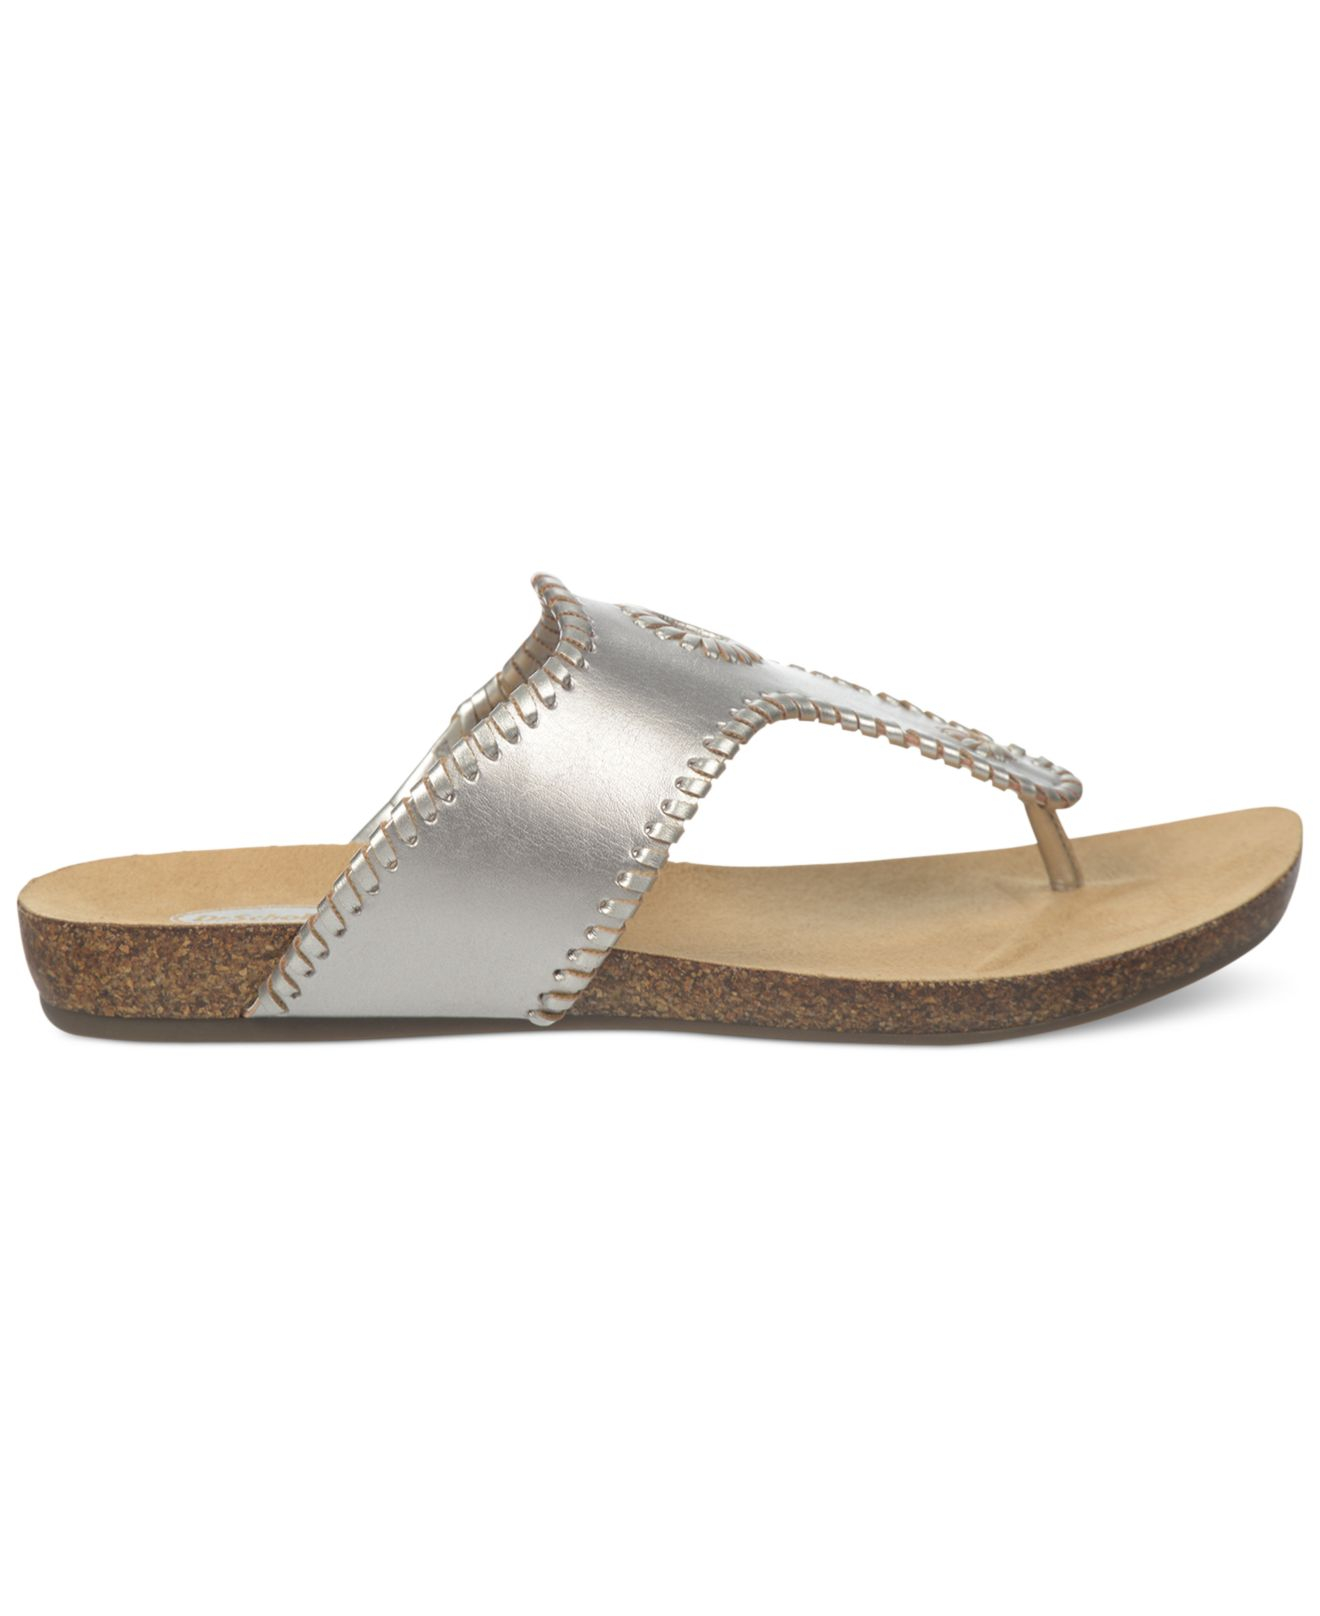 3993e76be Lyst - Dr. Scholls Ridley Footbed Thong Sandals in Metallic